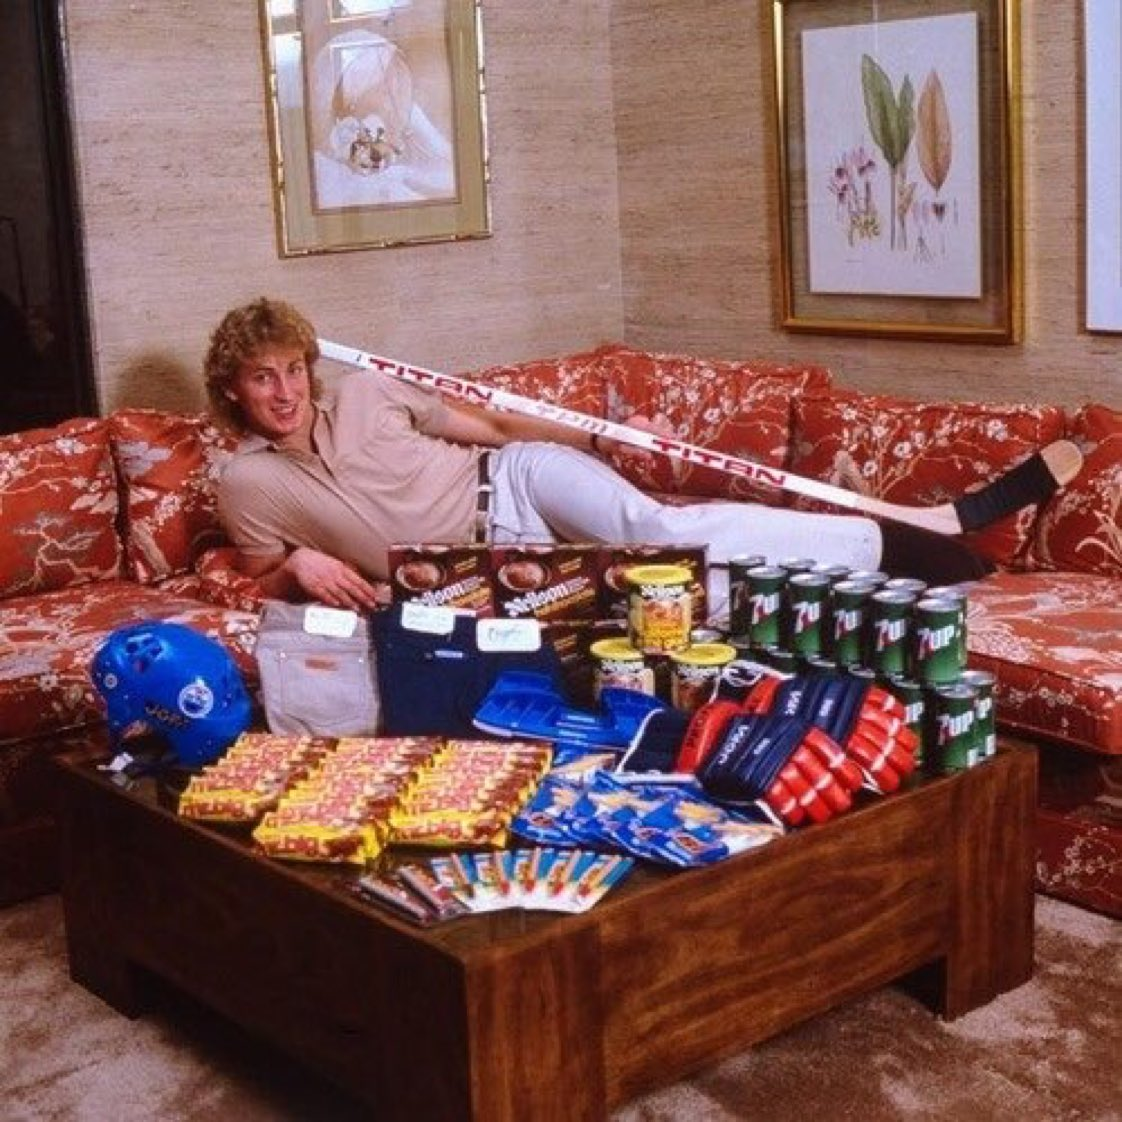 Sometime Wayne Gretzky just liked to relax with the products he endorsed, the hotel art he'd stolen, and his garage sale sofa. https://t.co/S7R7NgYcIJ